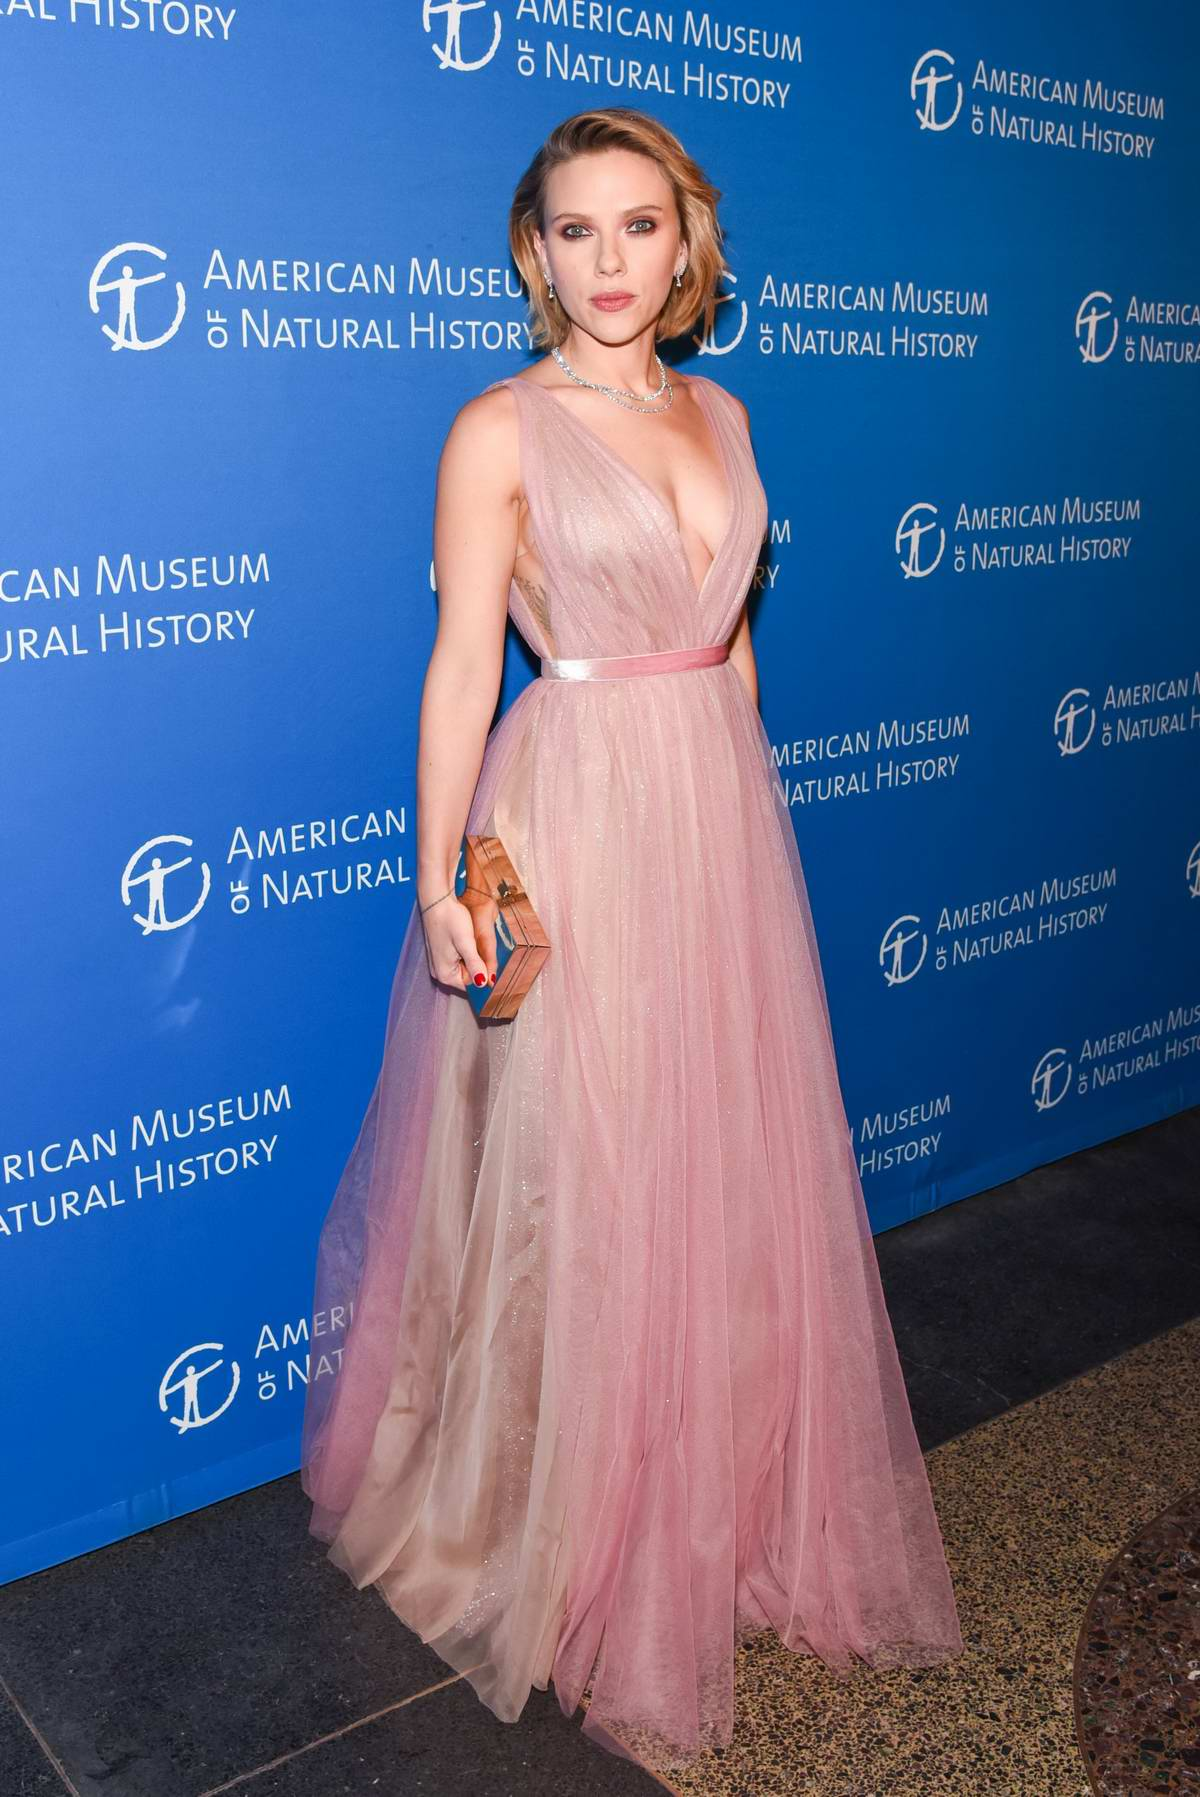 Scarlett Johansson and Colin Jost attend American Museum of Natural History Gala in New York City